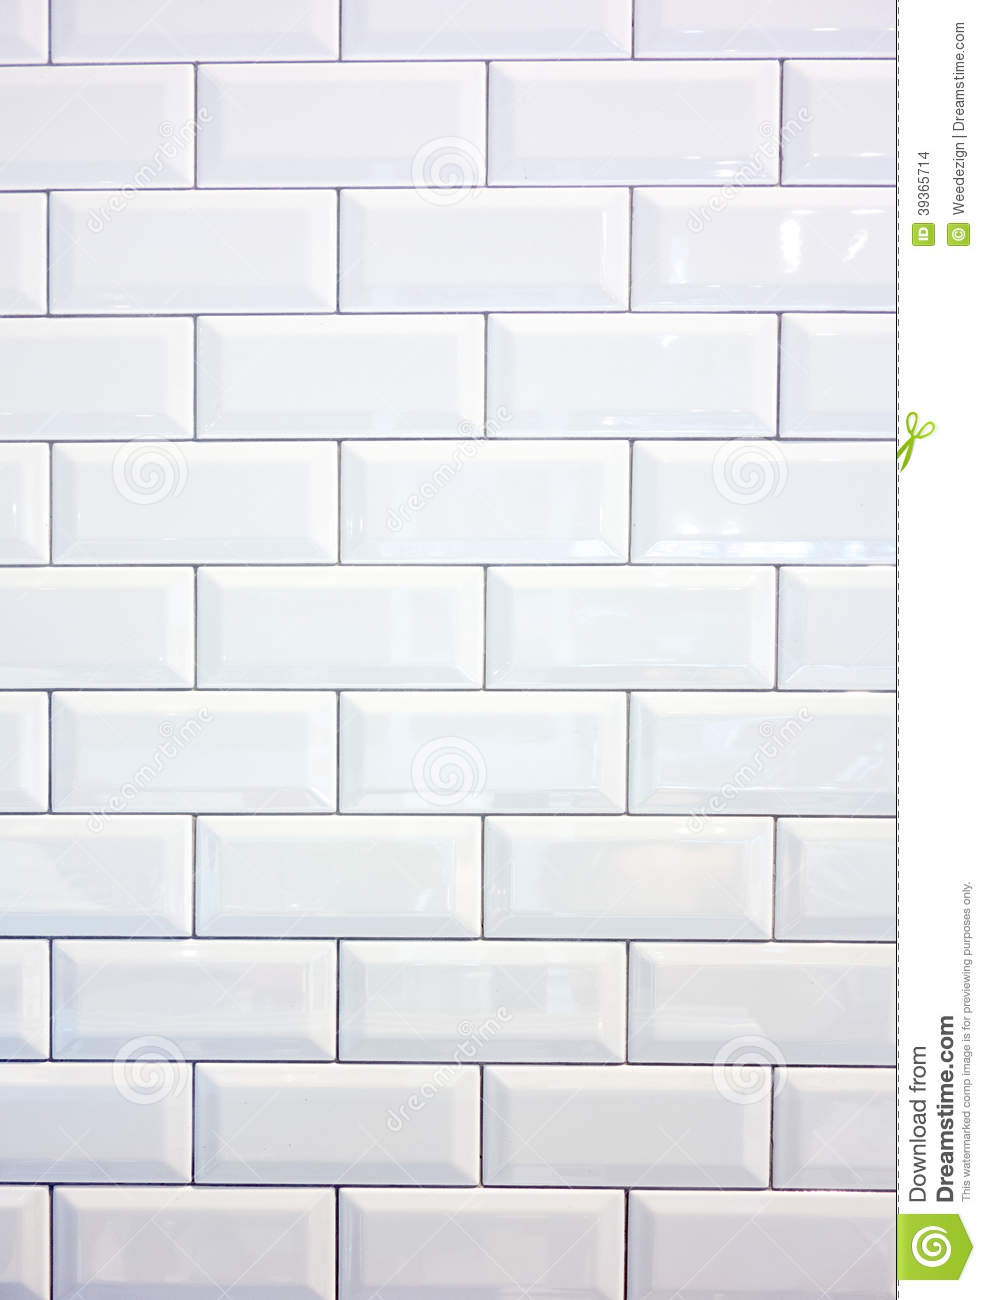 White ceramic tile wall stock photo image of clean tile for White ceramic tile bathroom